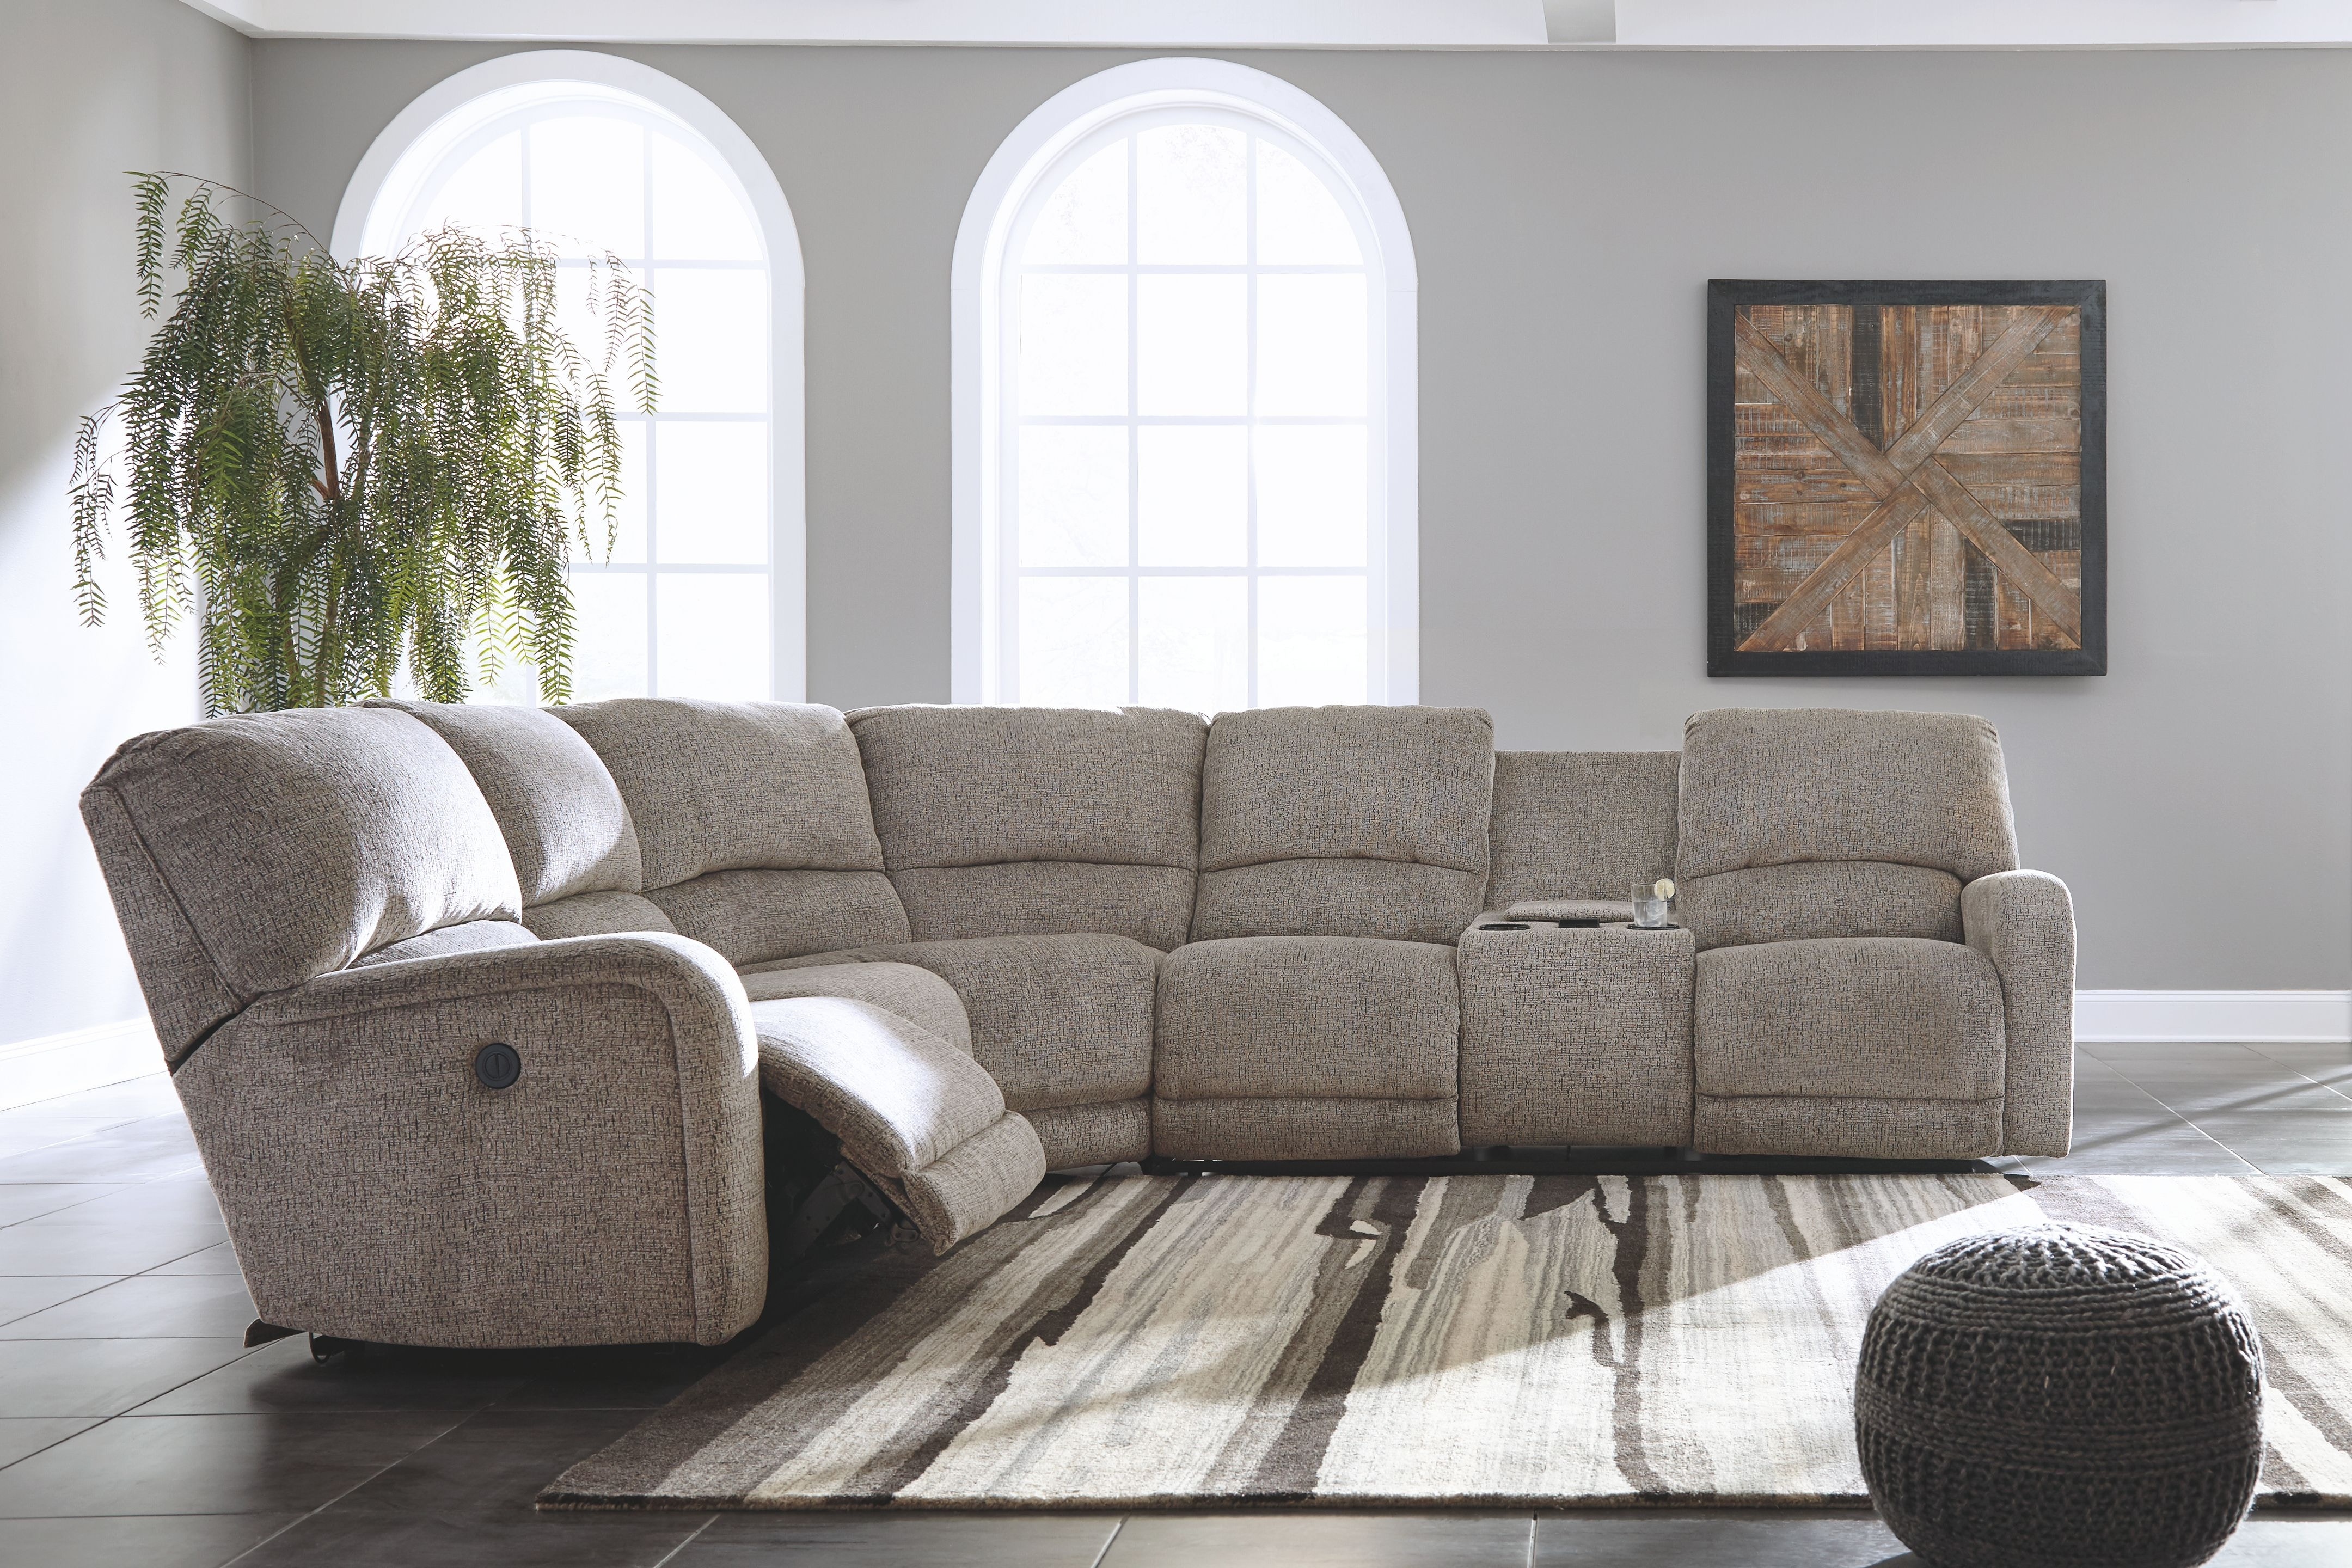 Beautiful Signature Design By Ashley Living Room LAF Zero Wall Power Recliner 1790158    Claussens Furniture   Lakeland And Winter Haven, FL